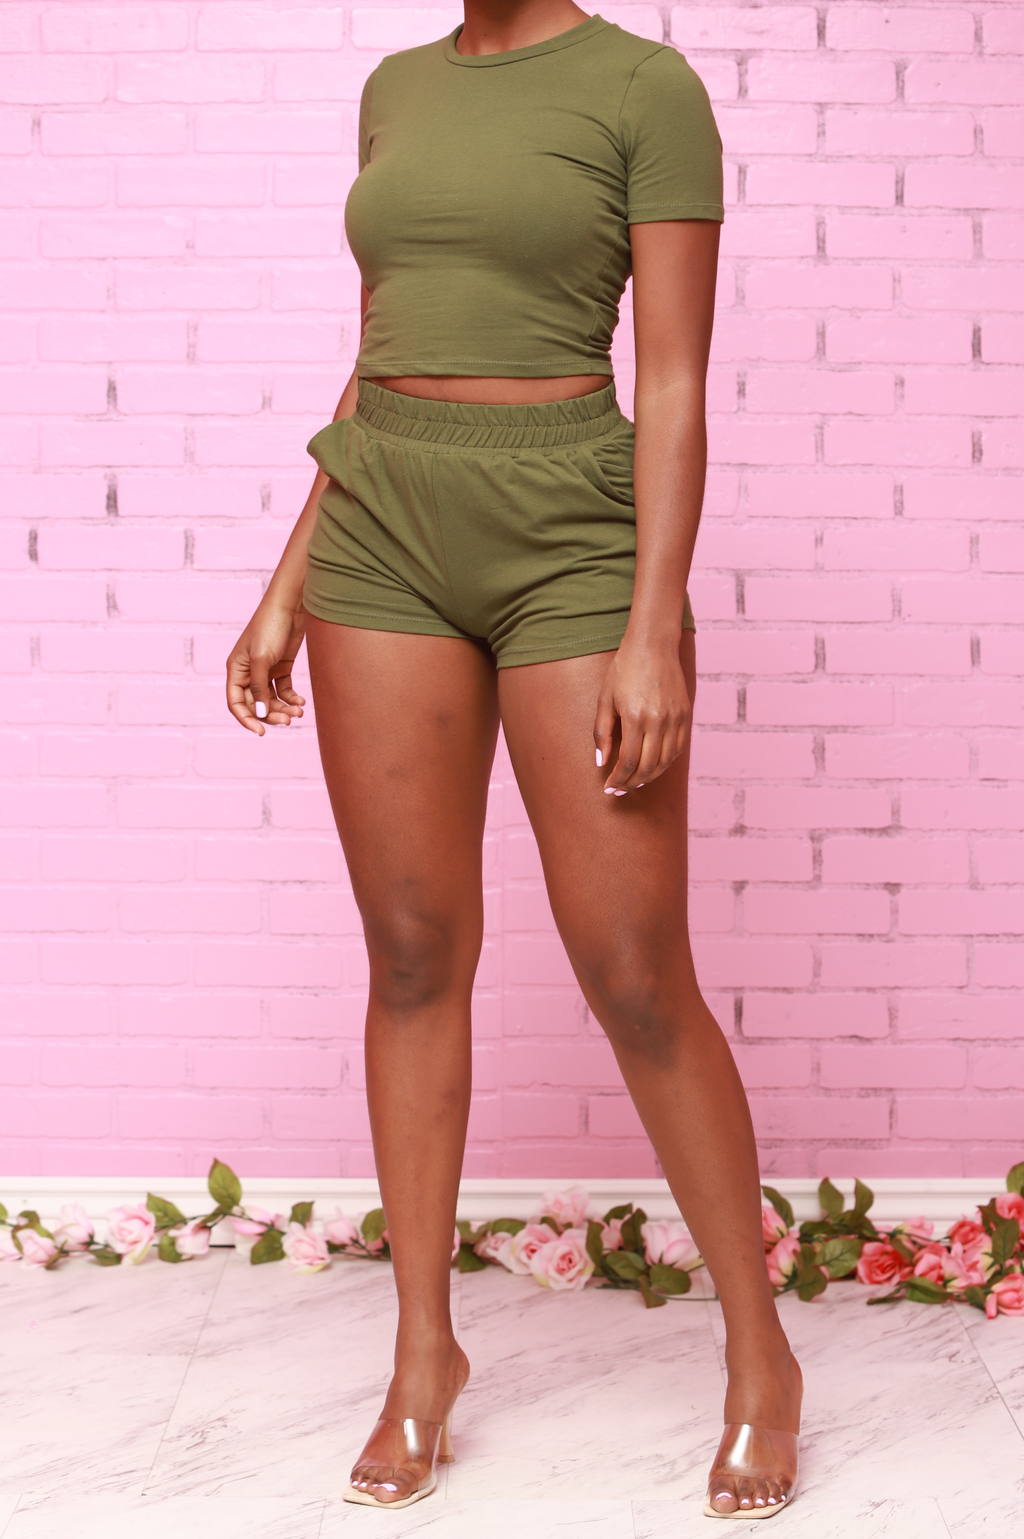 Next Mini Short Set - Olive - Swank A Posh